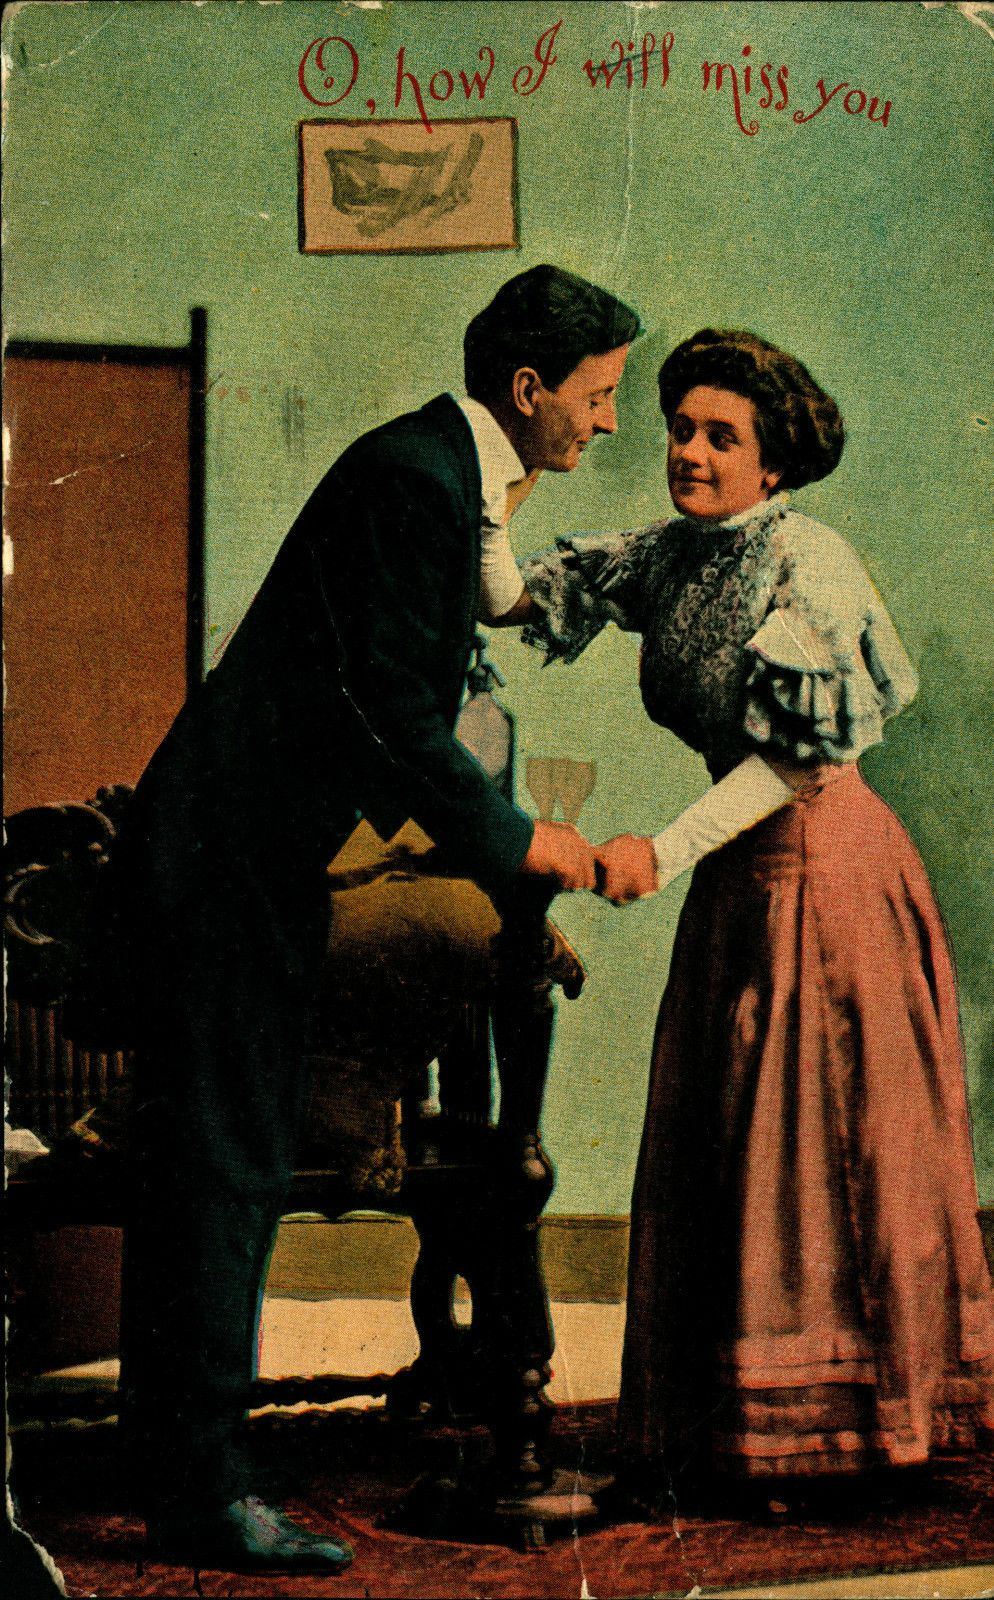 1910 How I Will Miss You Love Couple Used Vintage Postcard